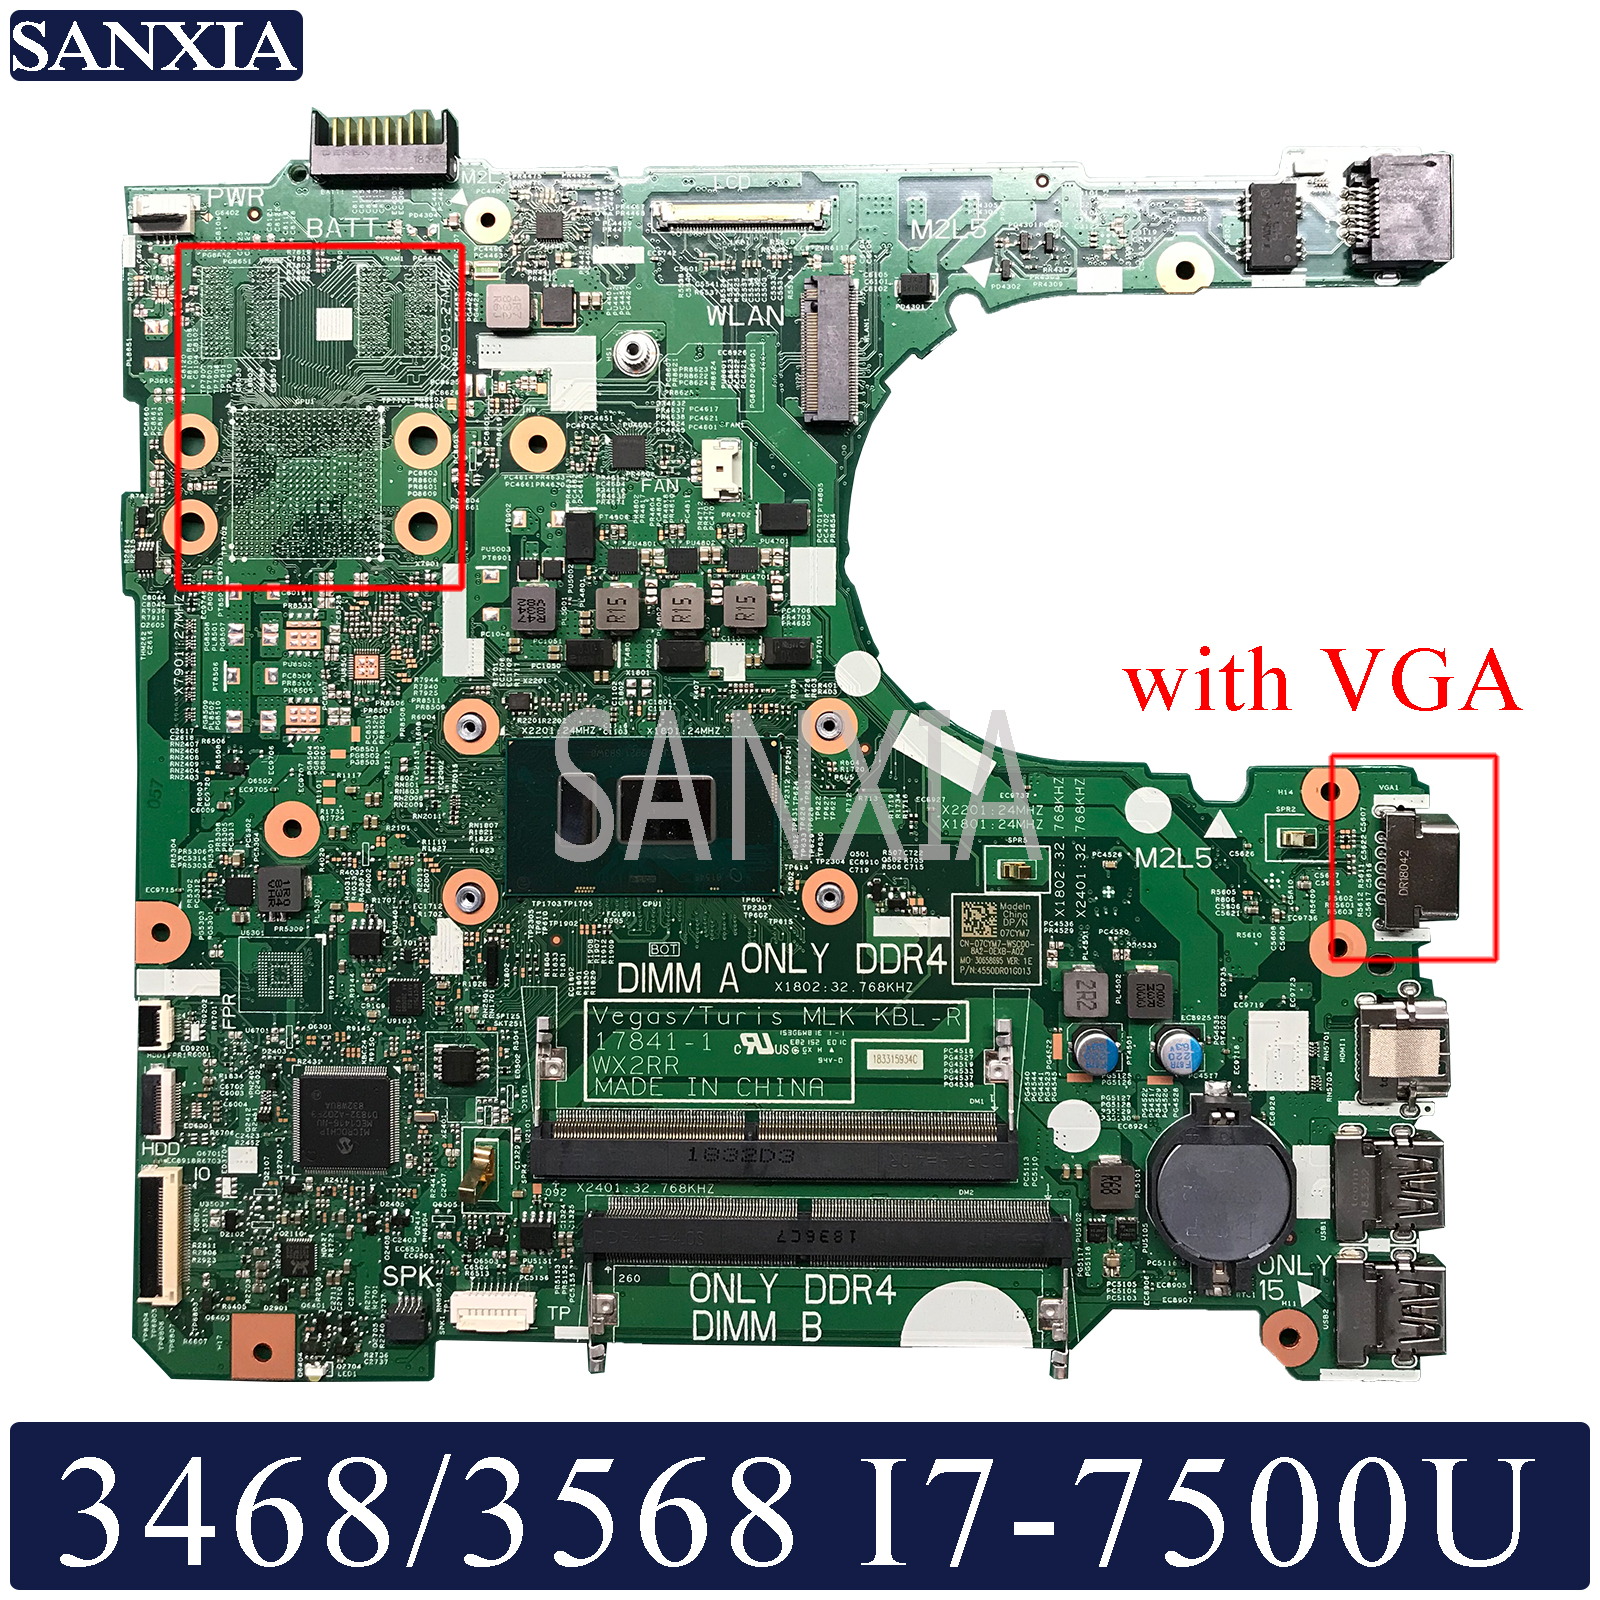 KEFU 17841 1 Laptop motherboard for Dell 3568 3468 original mainboard I7 7500U with VGA